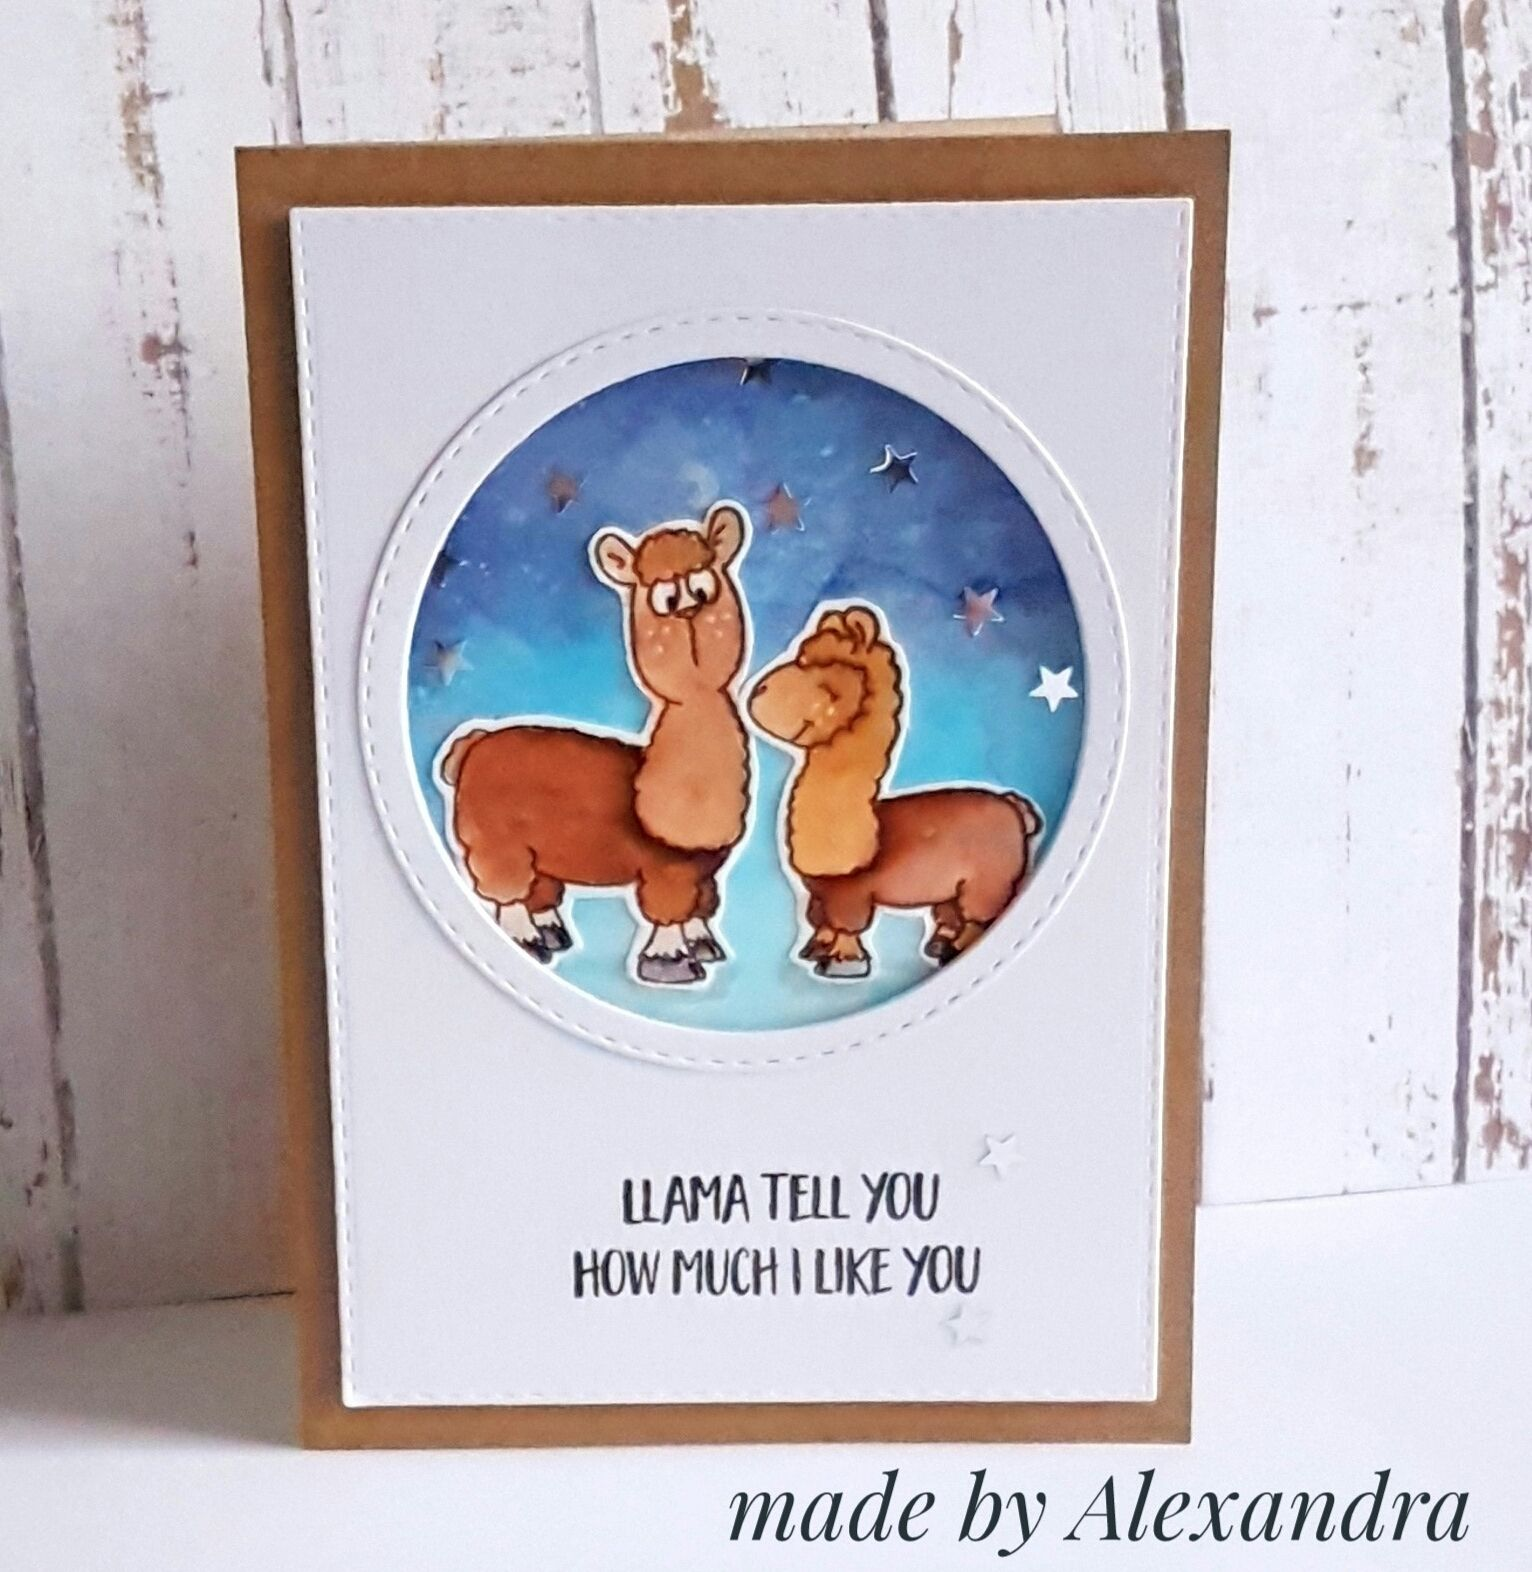 Stamps For Card Making Ideas Part - 42: Gerda Steiner - Llama Tell You Clear Stamp Set, Gerda Steiner Designs: Dies  To Die For. Find This Pin And More On Card Making Ideas ...